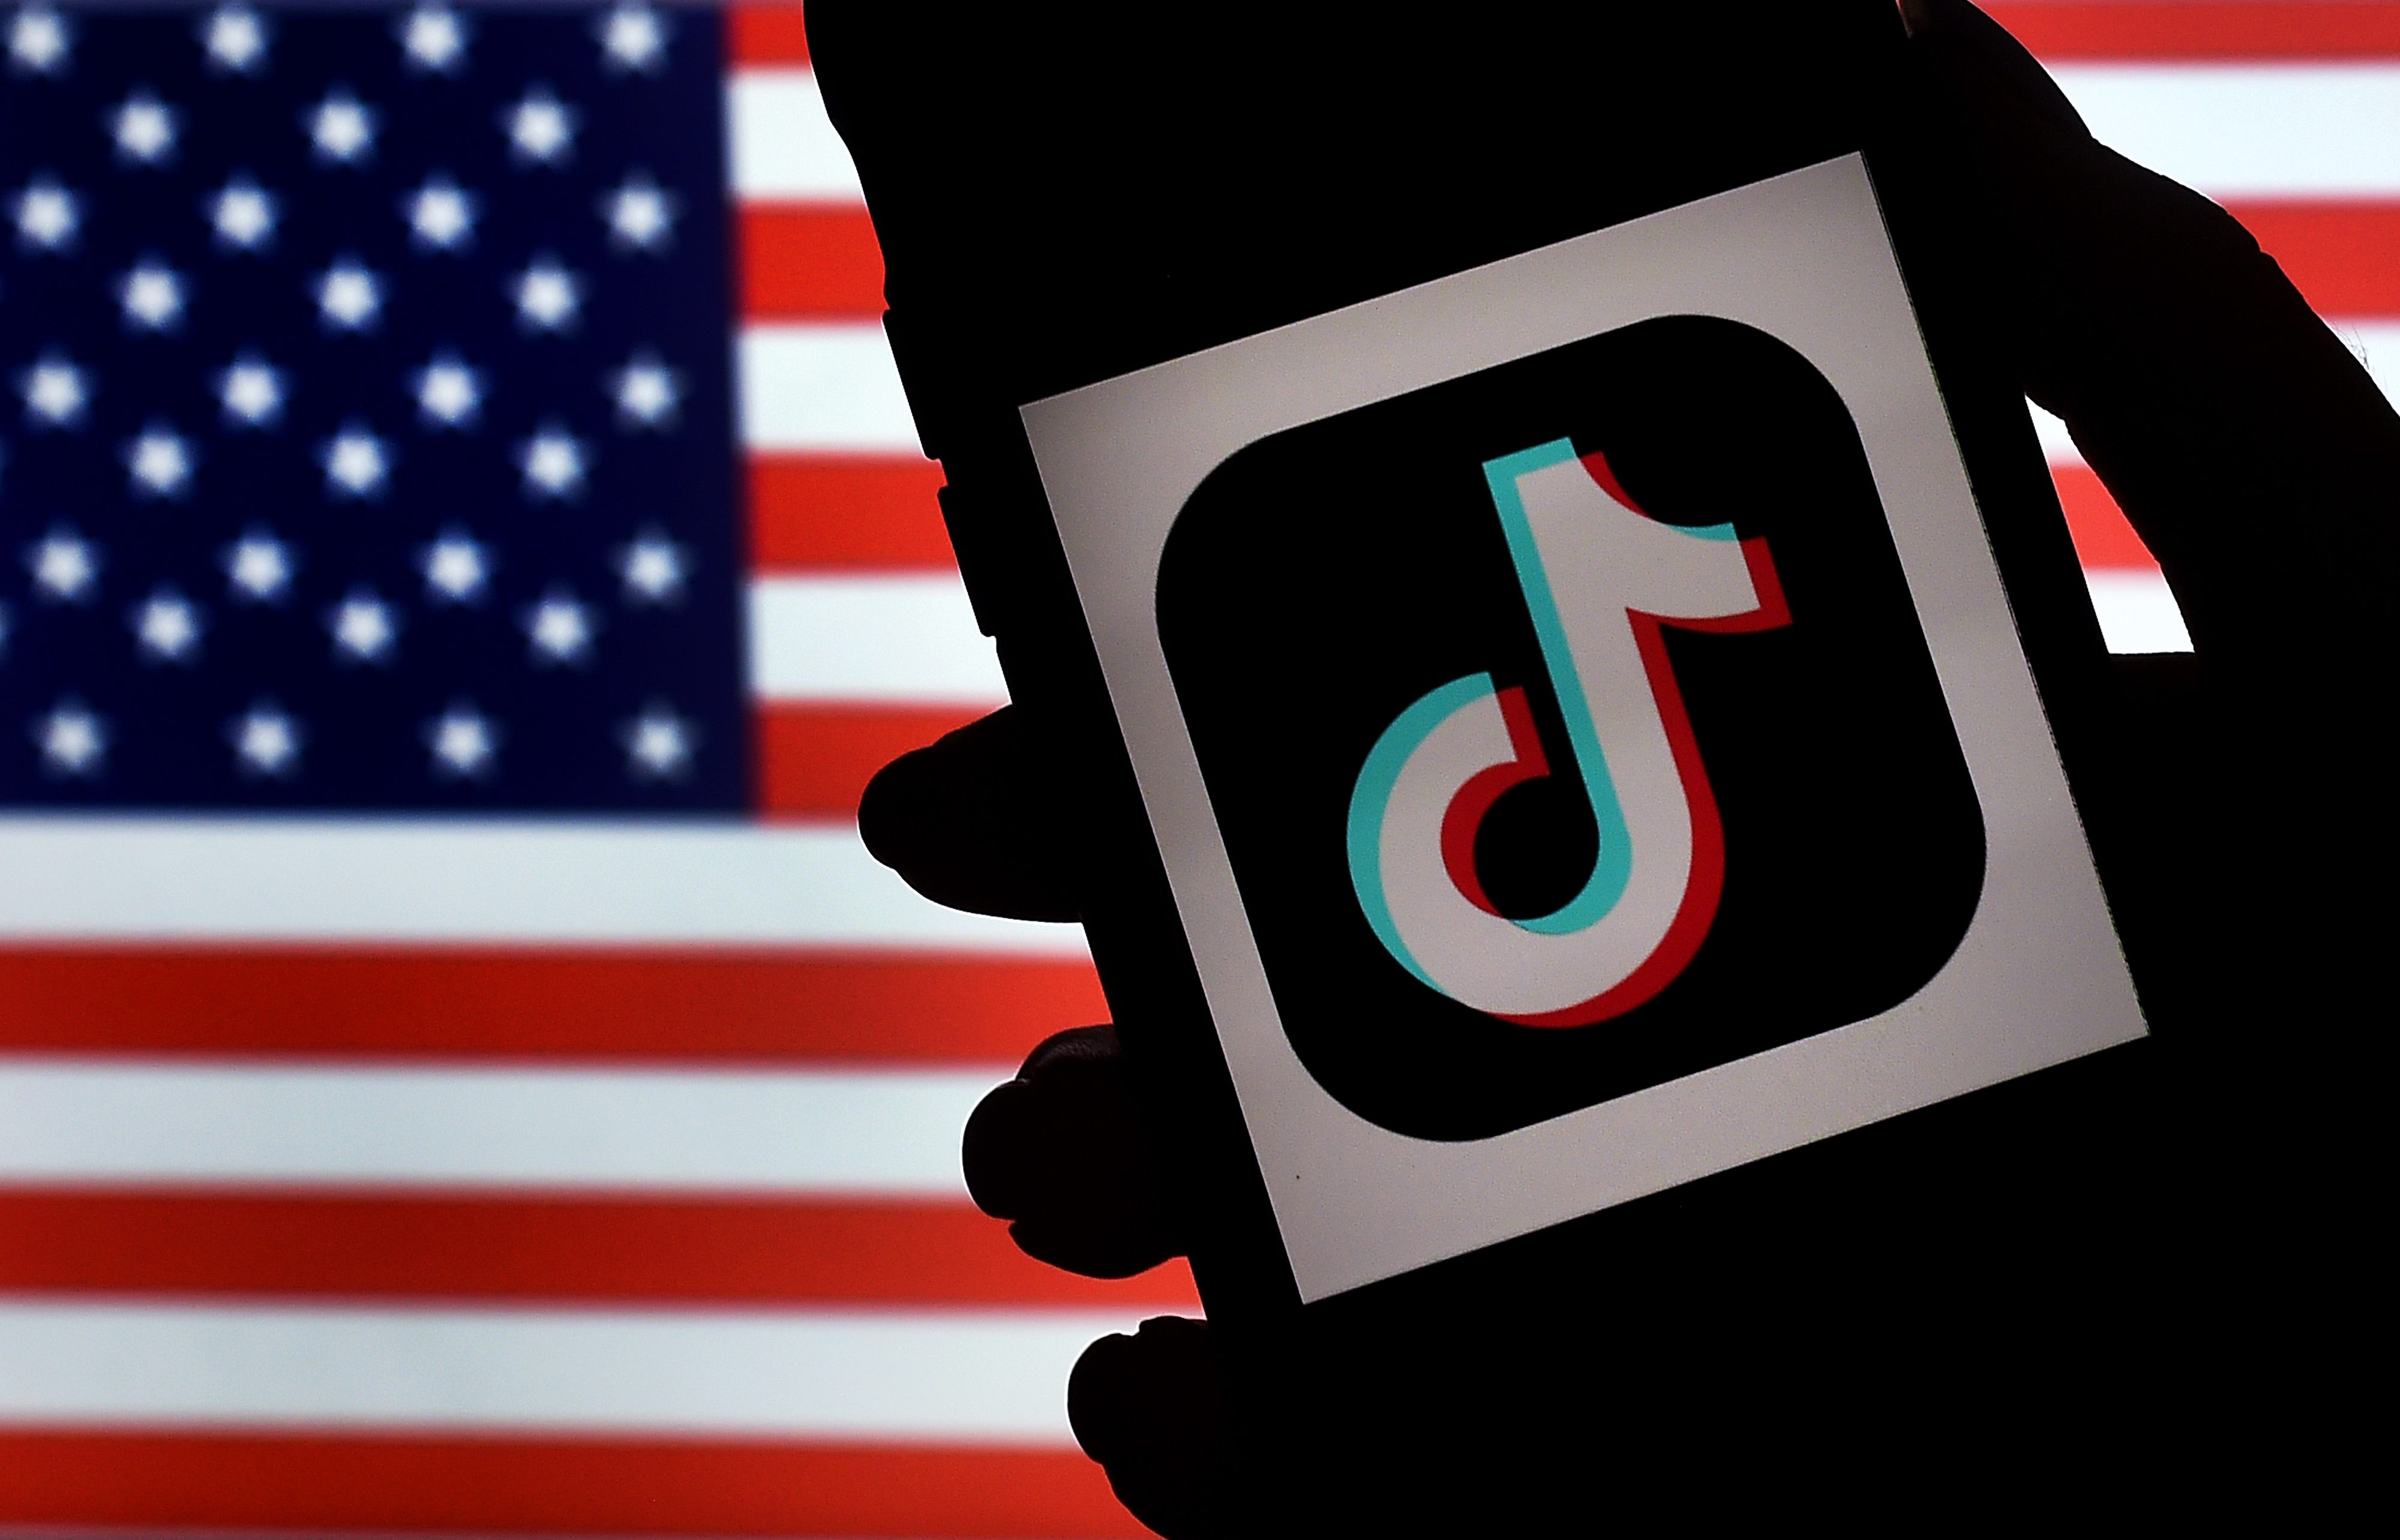 Facebook has your data. Why not China-owned ByteDance's TikTok?